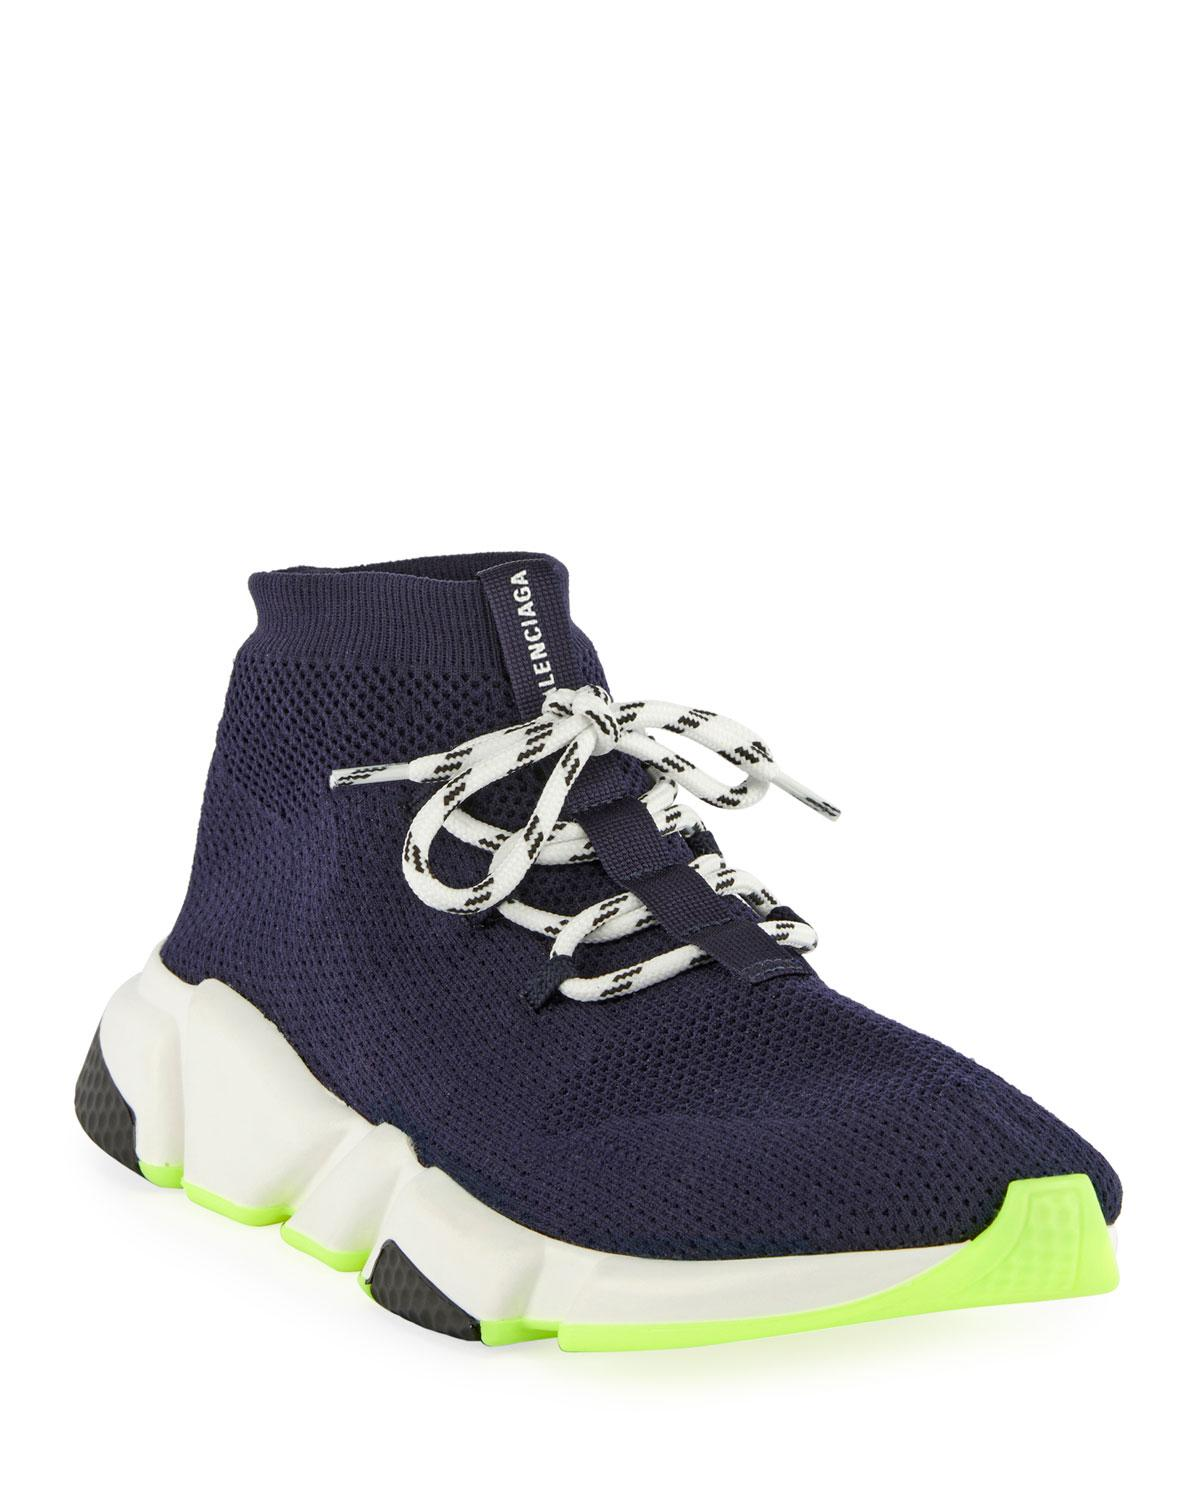 8f1defed7b1a4 Lyst - Balenciaga Atlantic Blue Speed Fabric Sneakers in Blue for ...